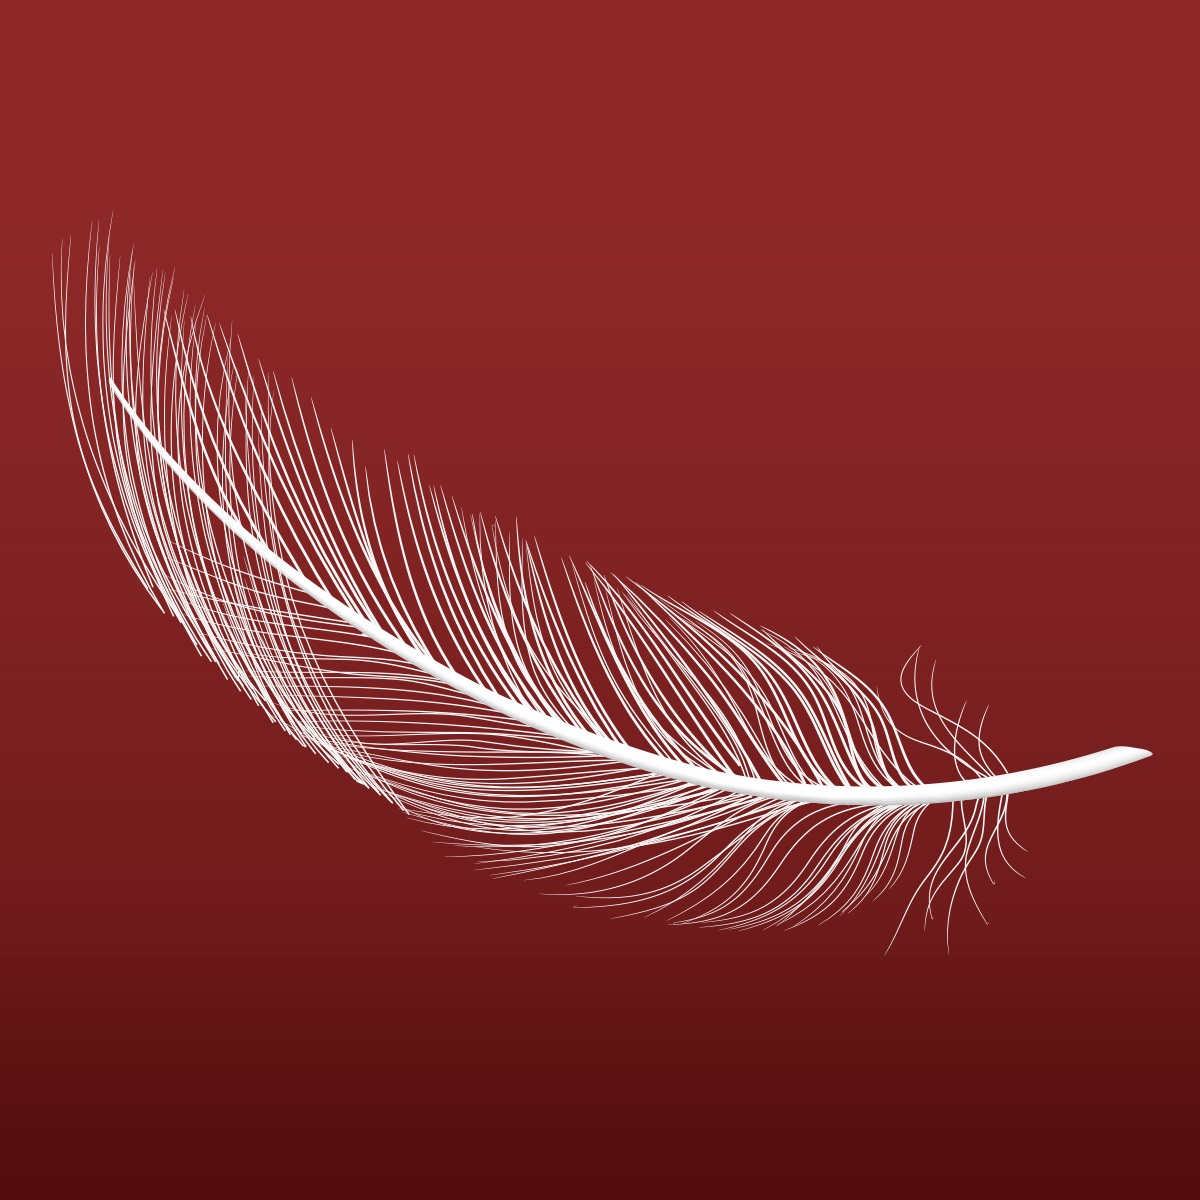 A feather falling